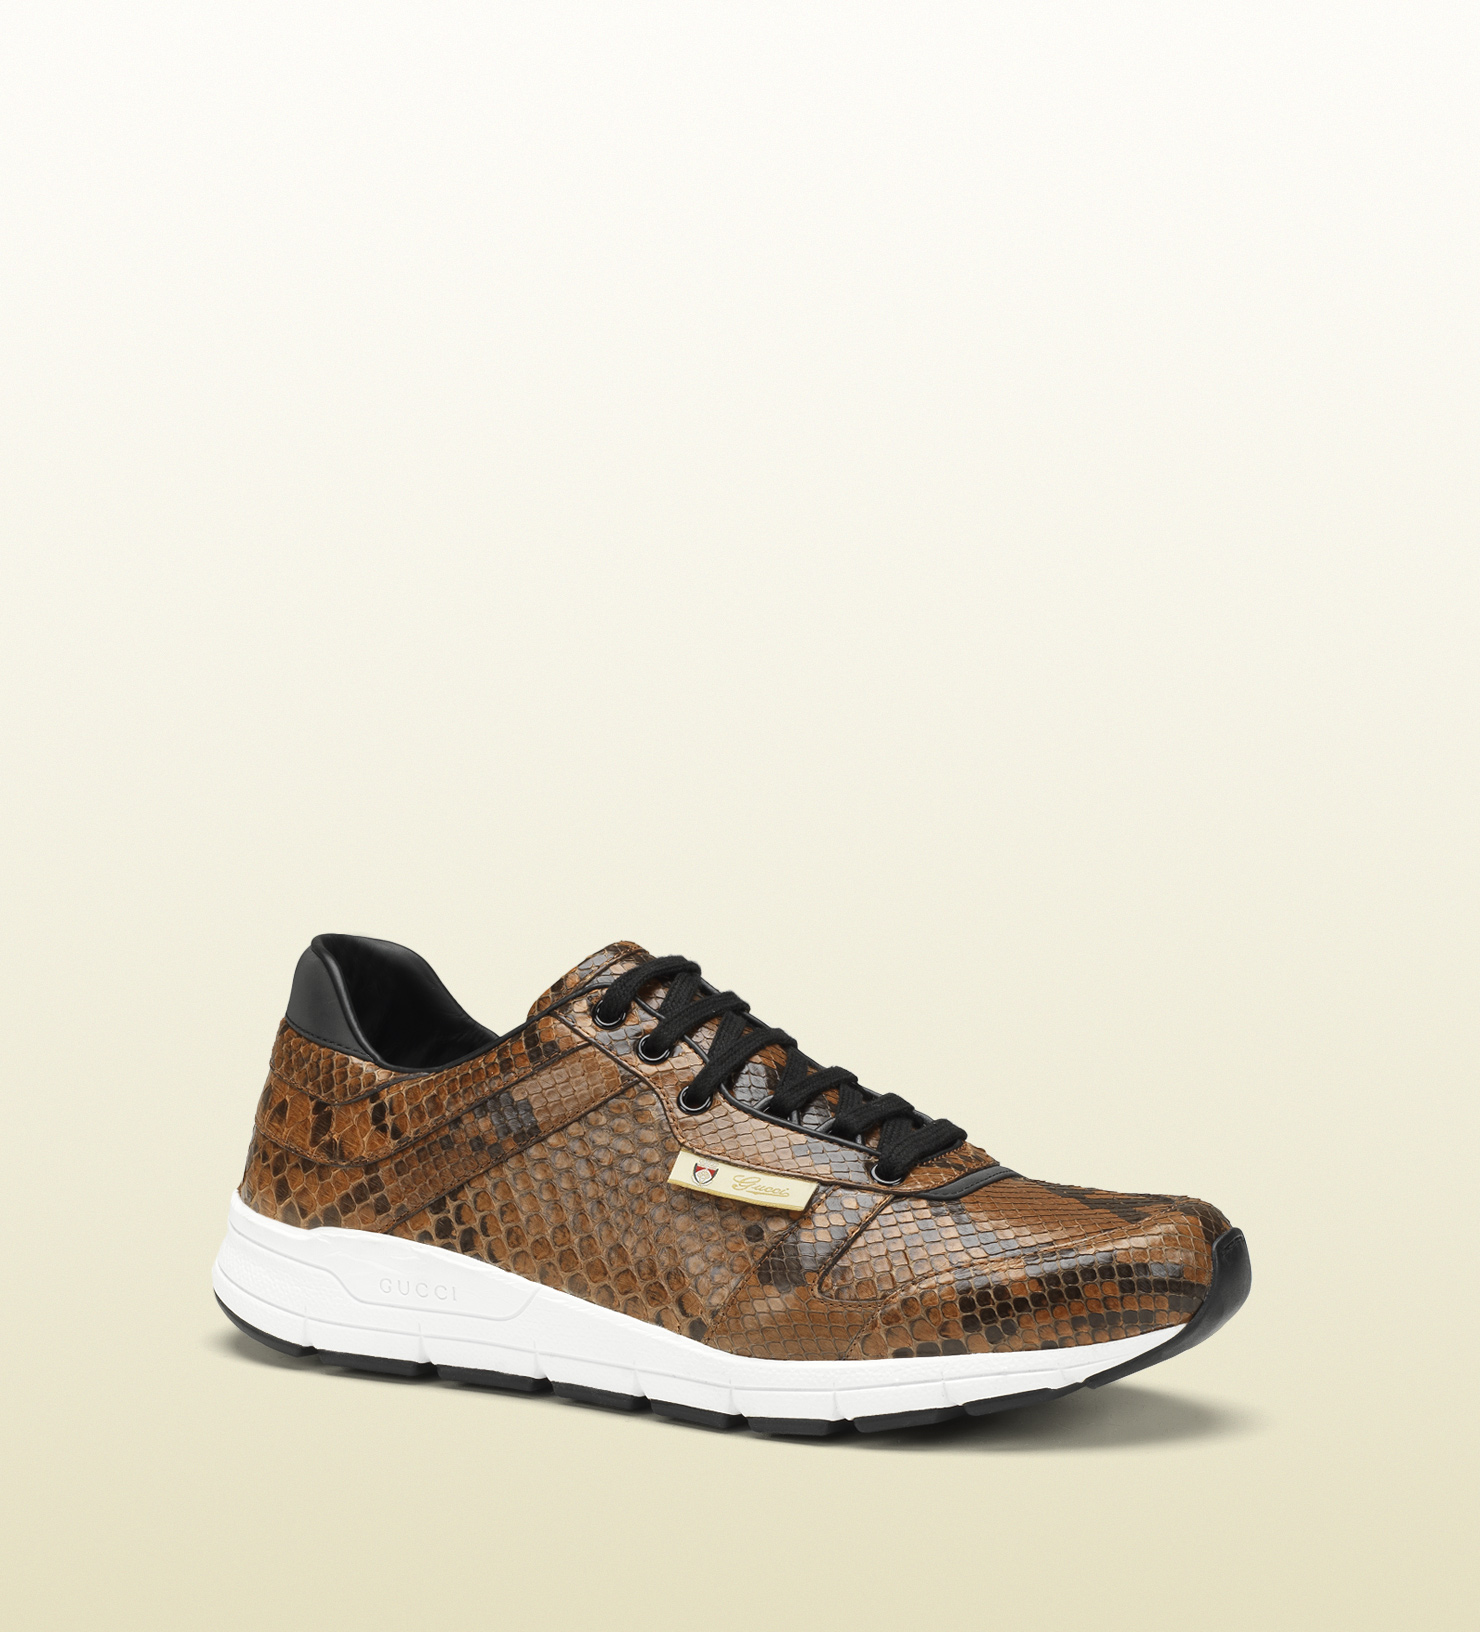 Gucci Brown Suede Arne S Sneakers rtjNc7